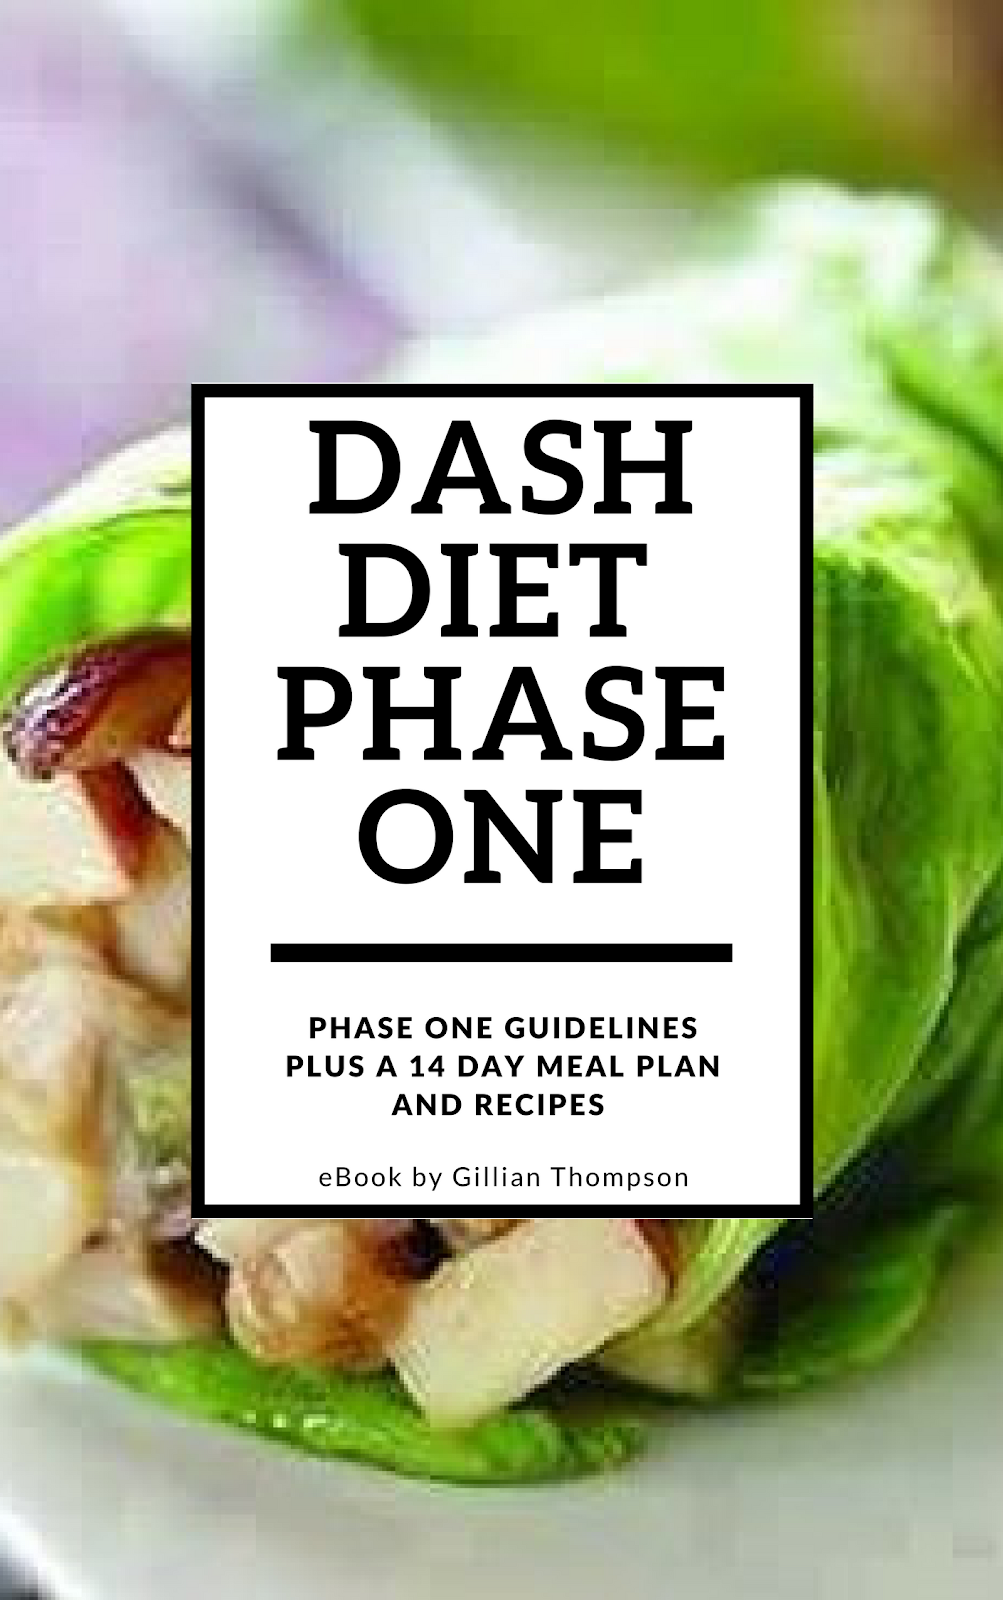 14 Day Meal Plan And Recipes Dash Diet Collection Dash Diet Recipes Dash Diet Plan Dash Diet Meal Plan